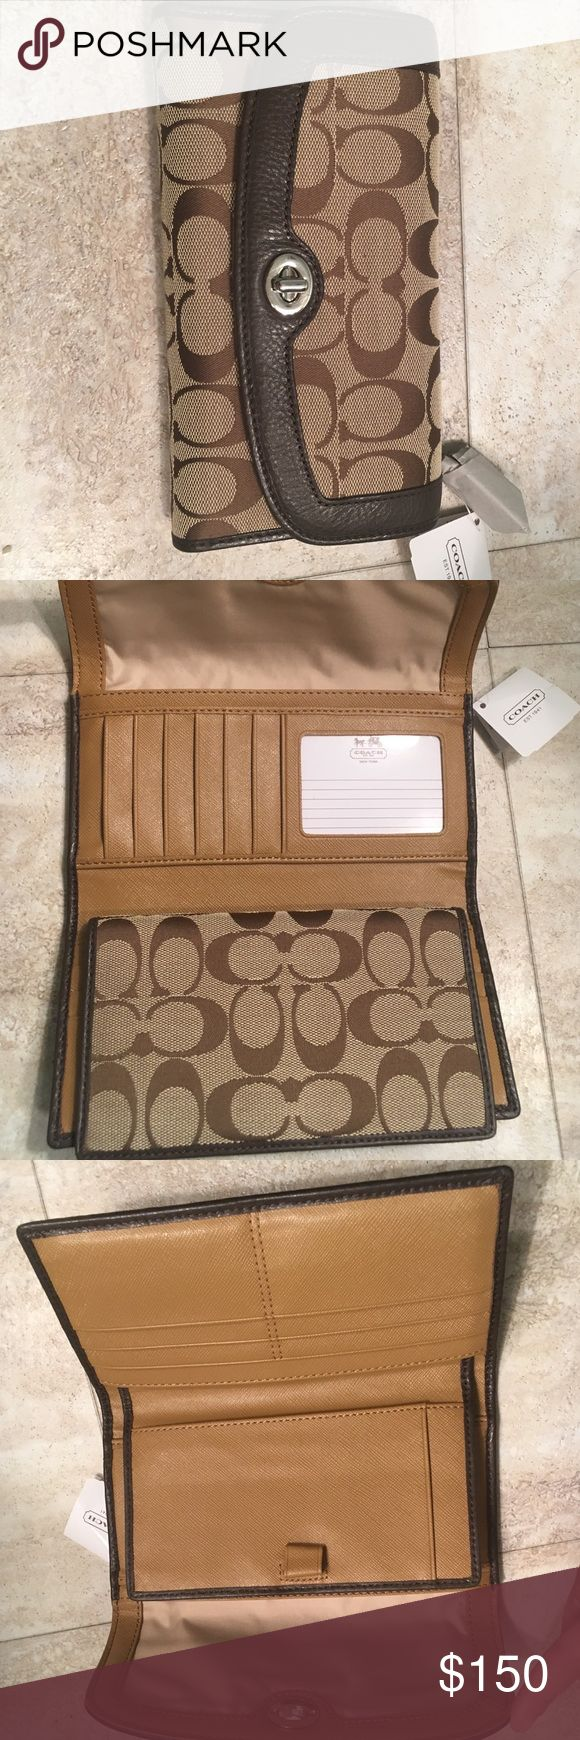 Coach Wallet with checkbook holder! *NWT* Coach Wallet; 14 card holders, removeable checkbook holder Coach Bags Wallets